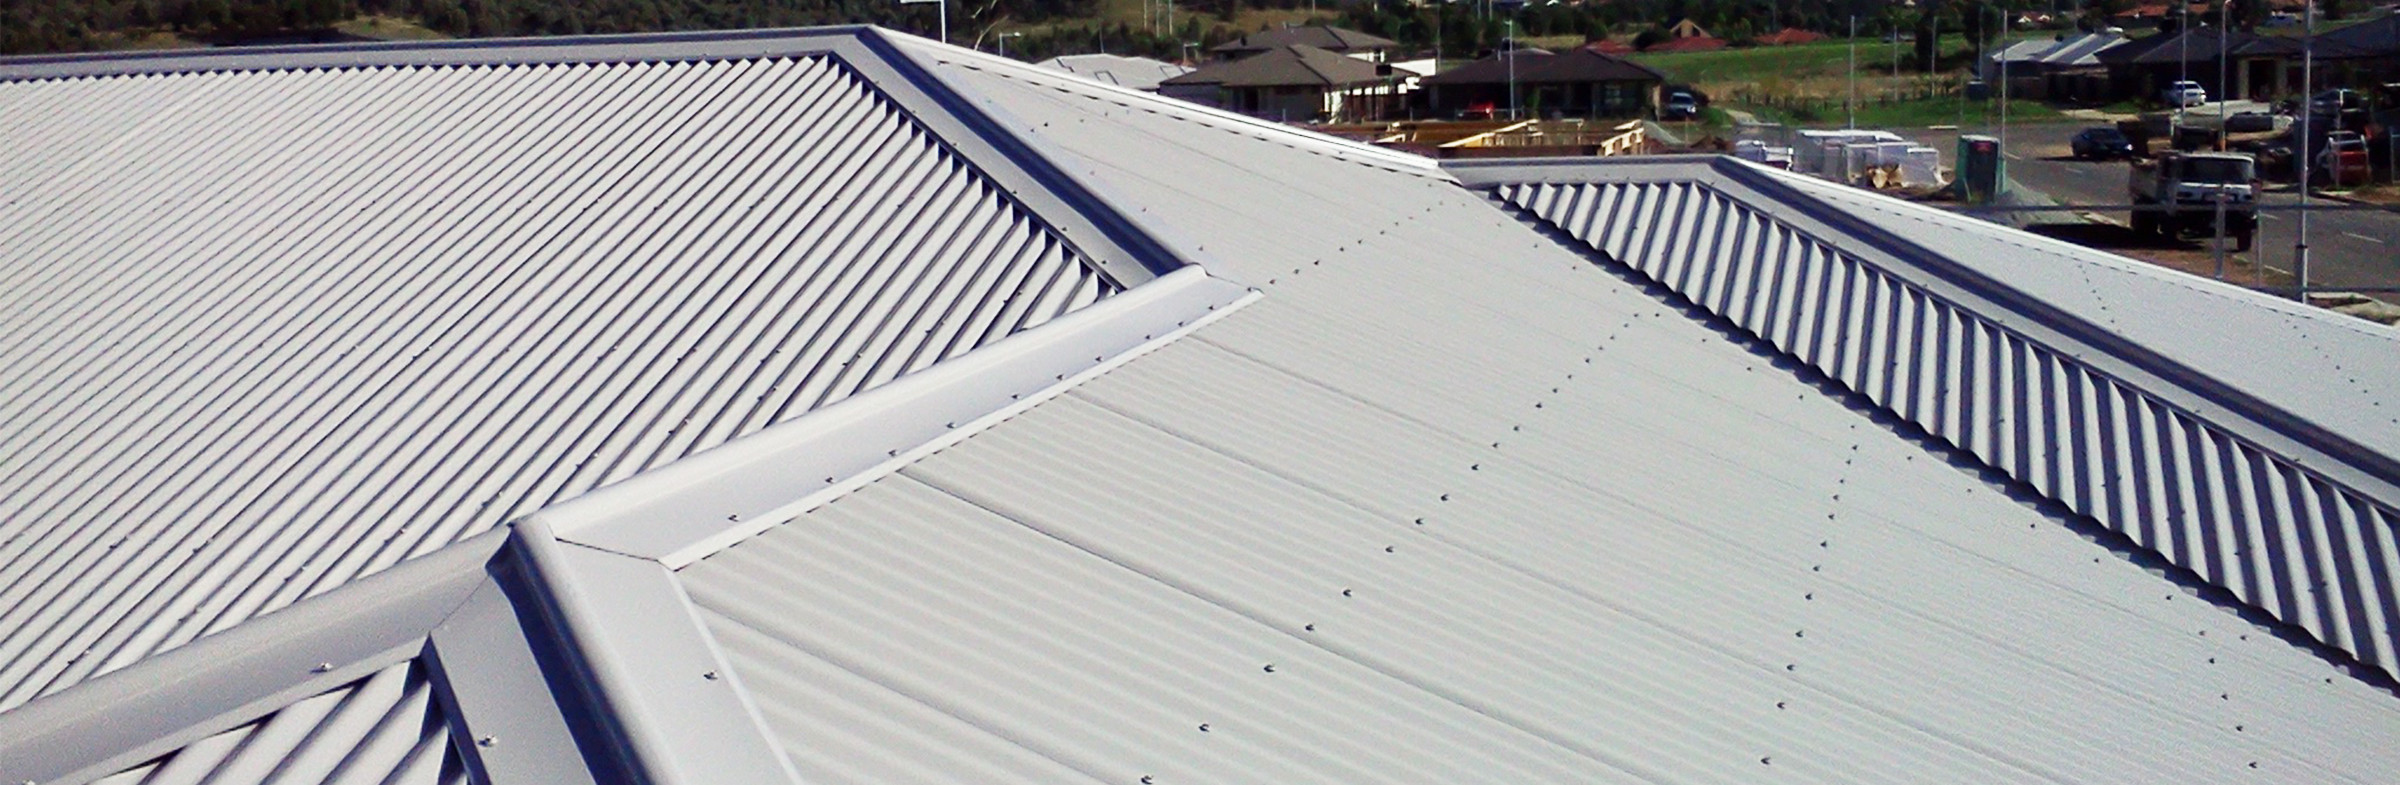 SKYLINE ROOFING NEWCASTLE 1